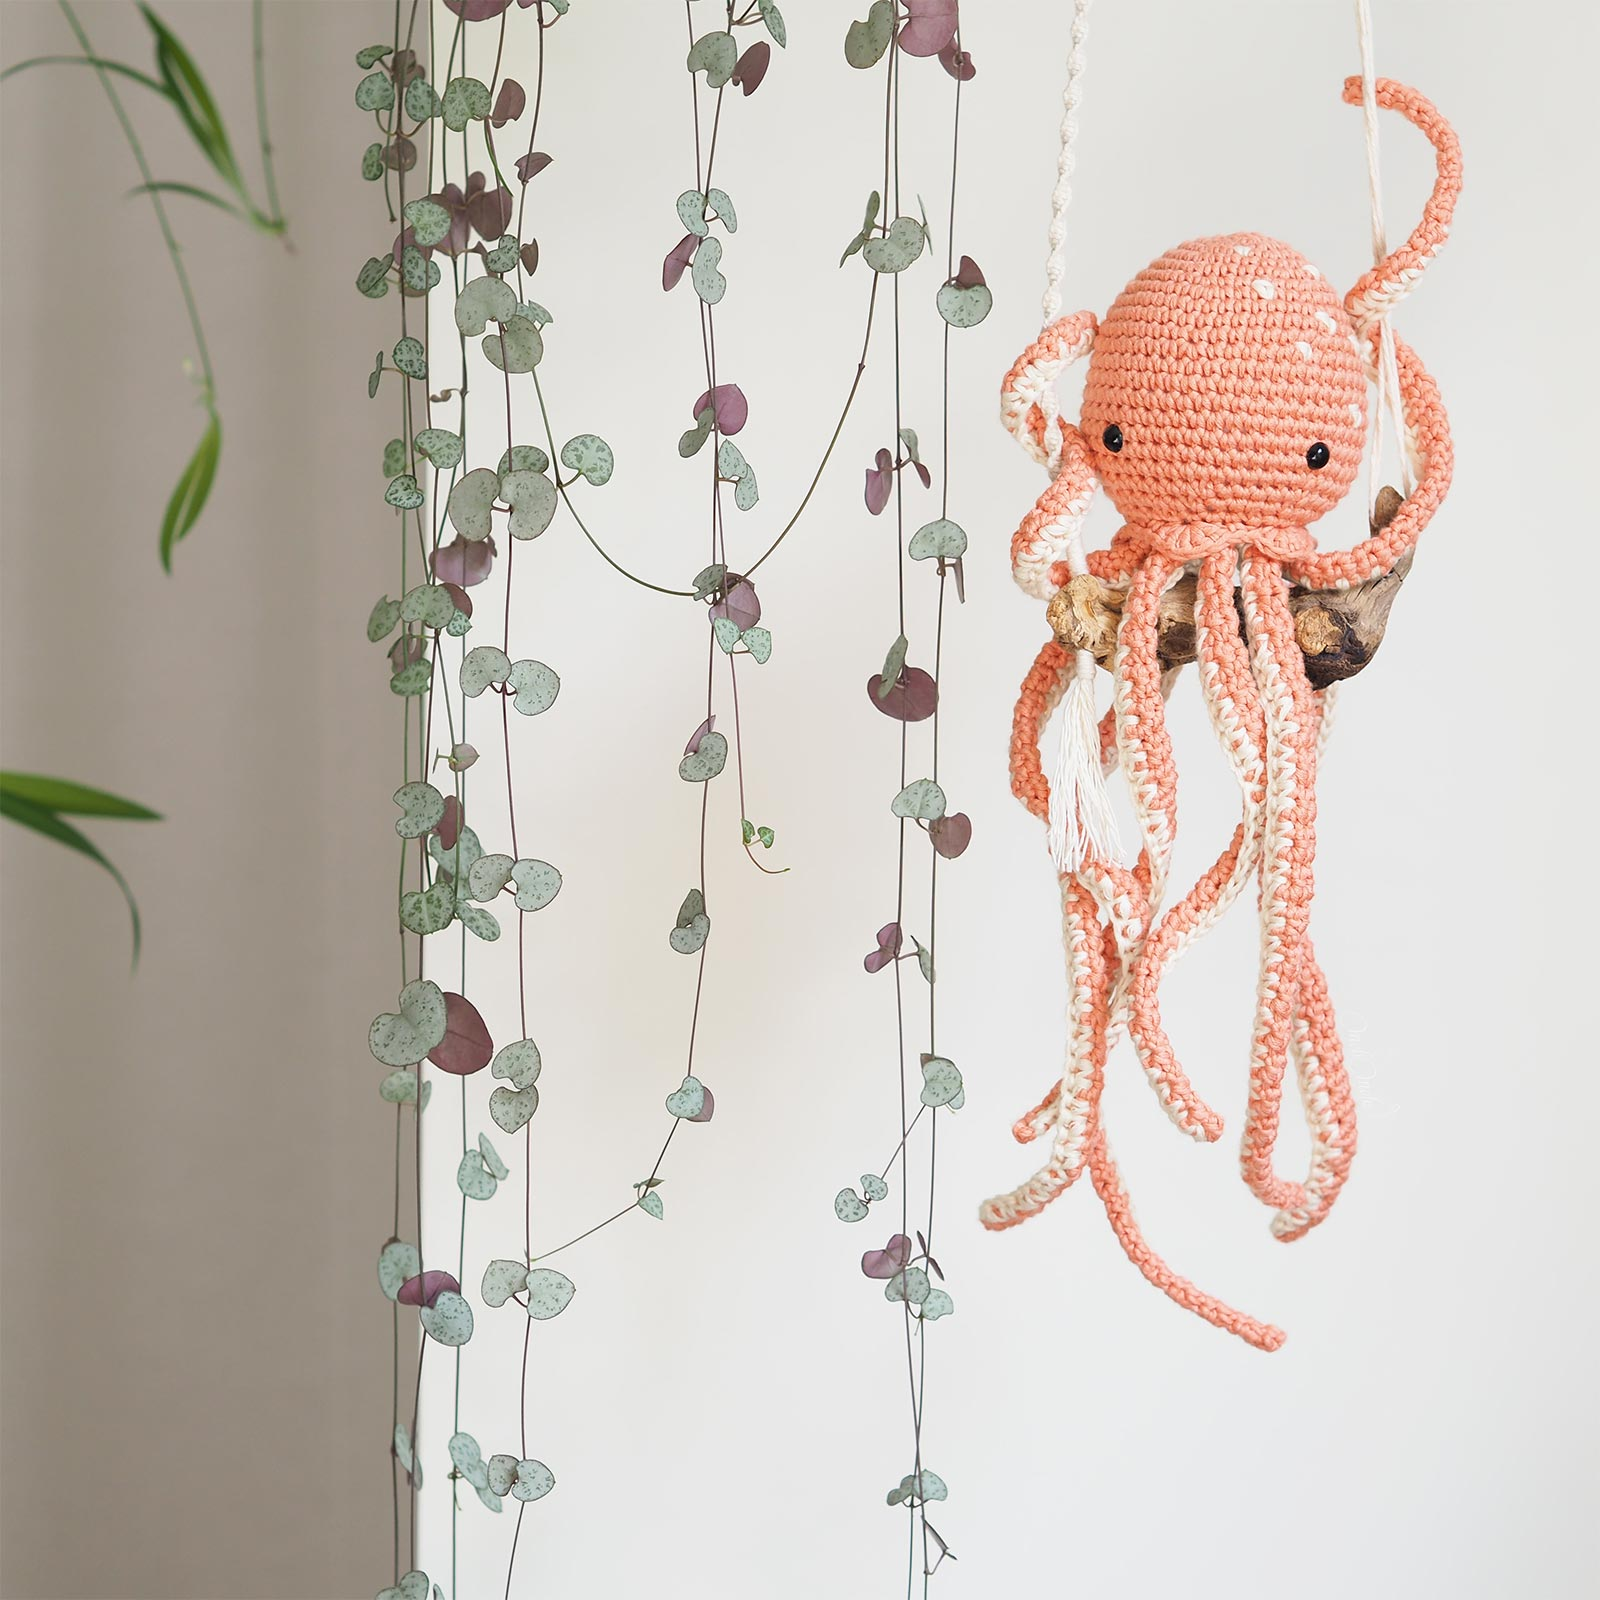 ceropegia woodii pieuvre poulpe octopus crochet algodón Pima salmón We Are Knitters laboutiquedemelimelo